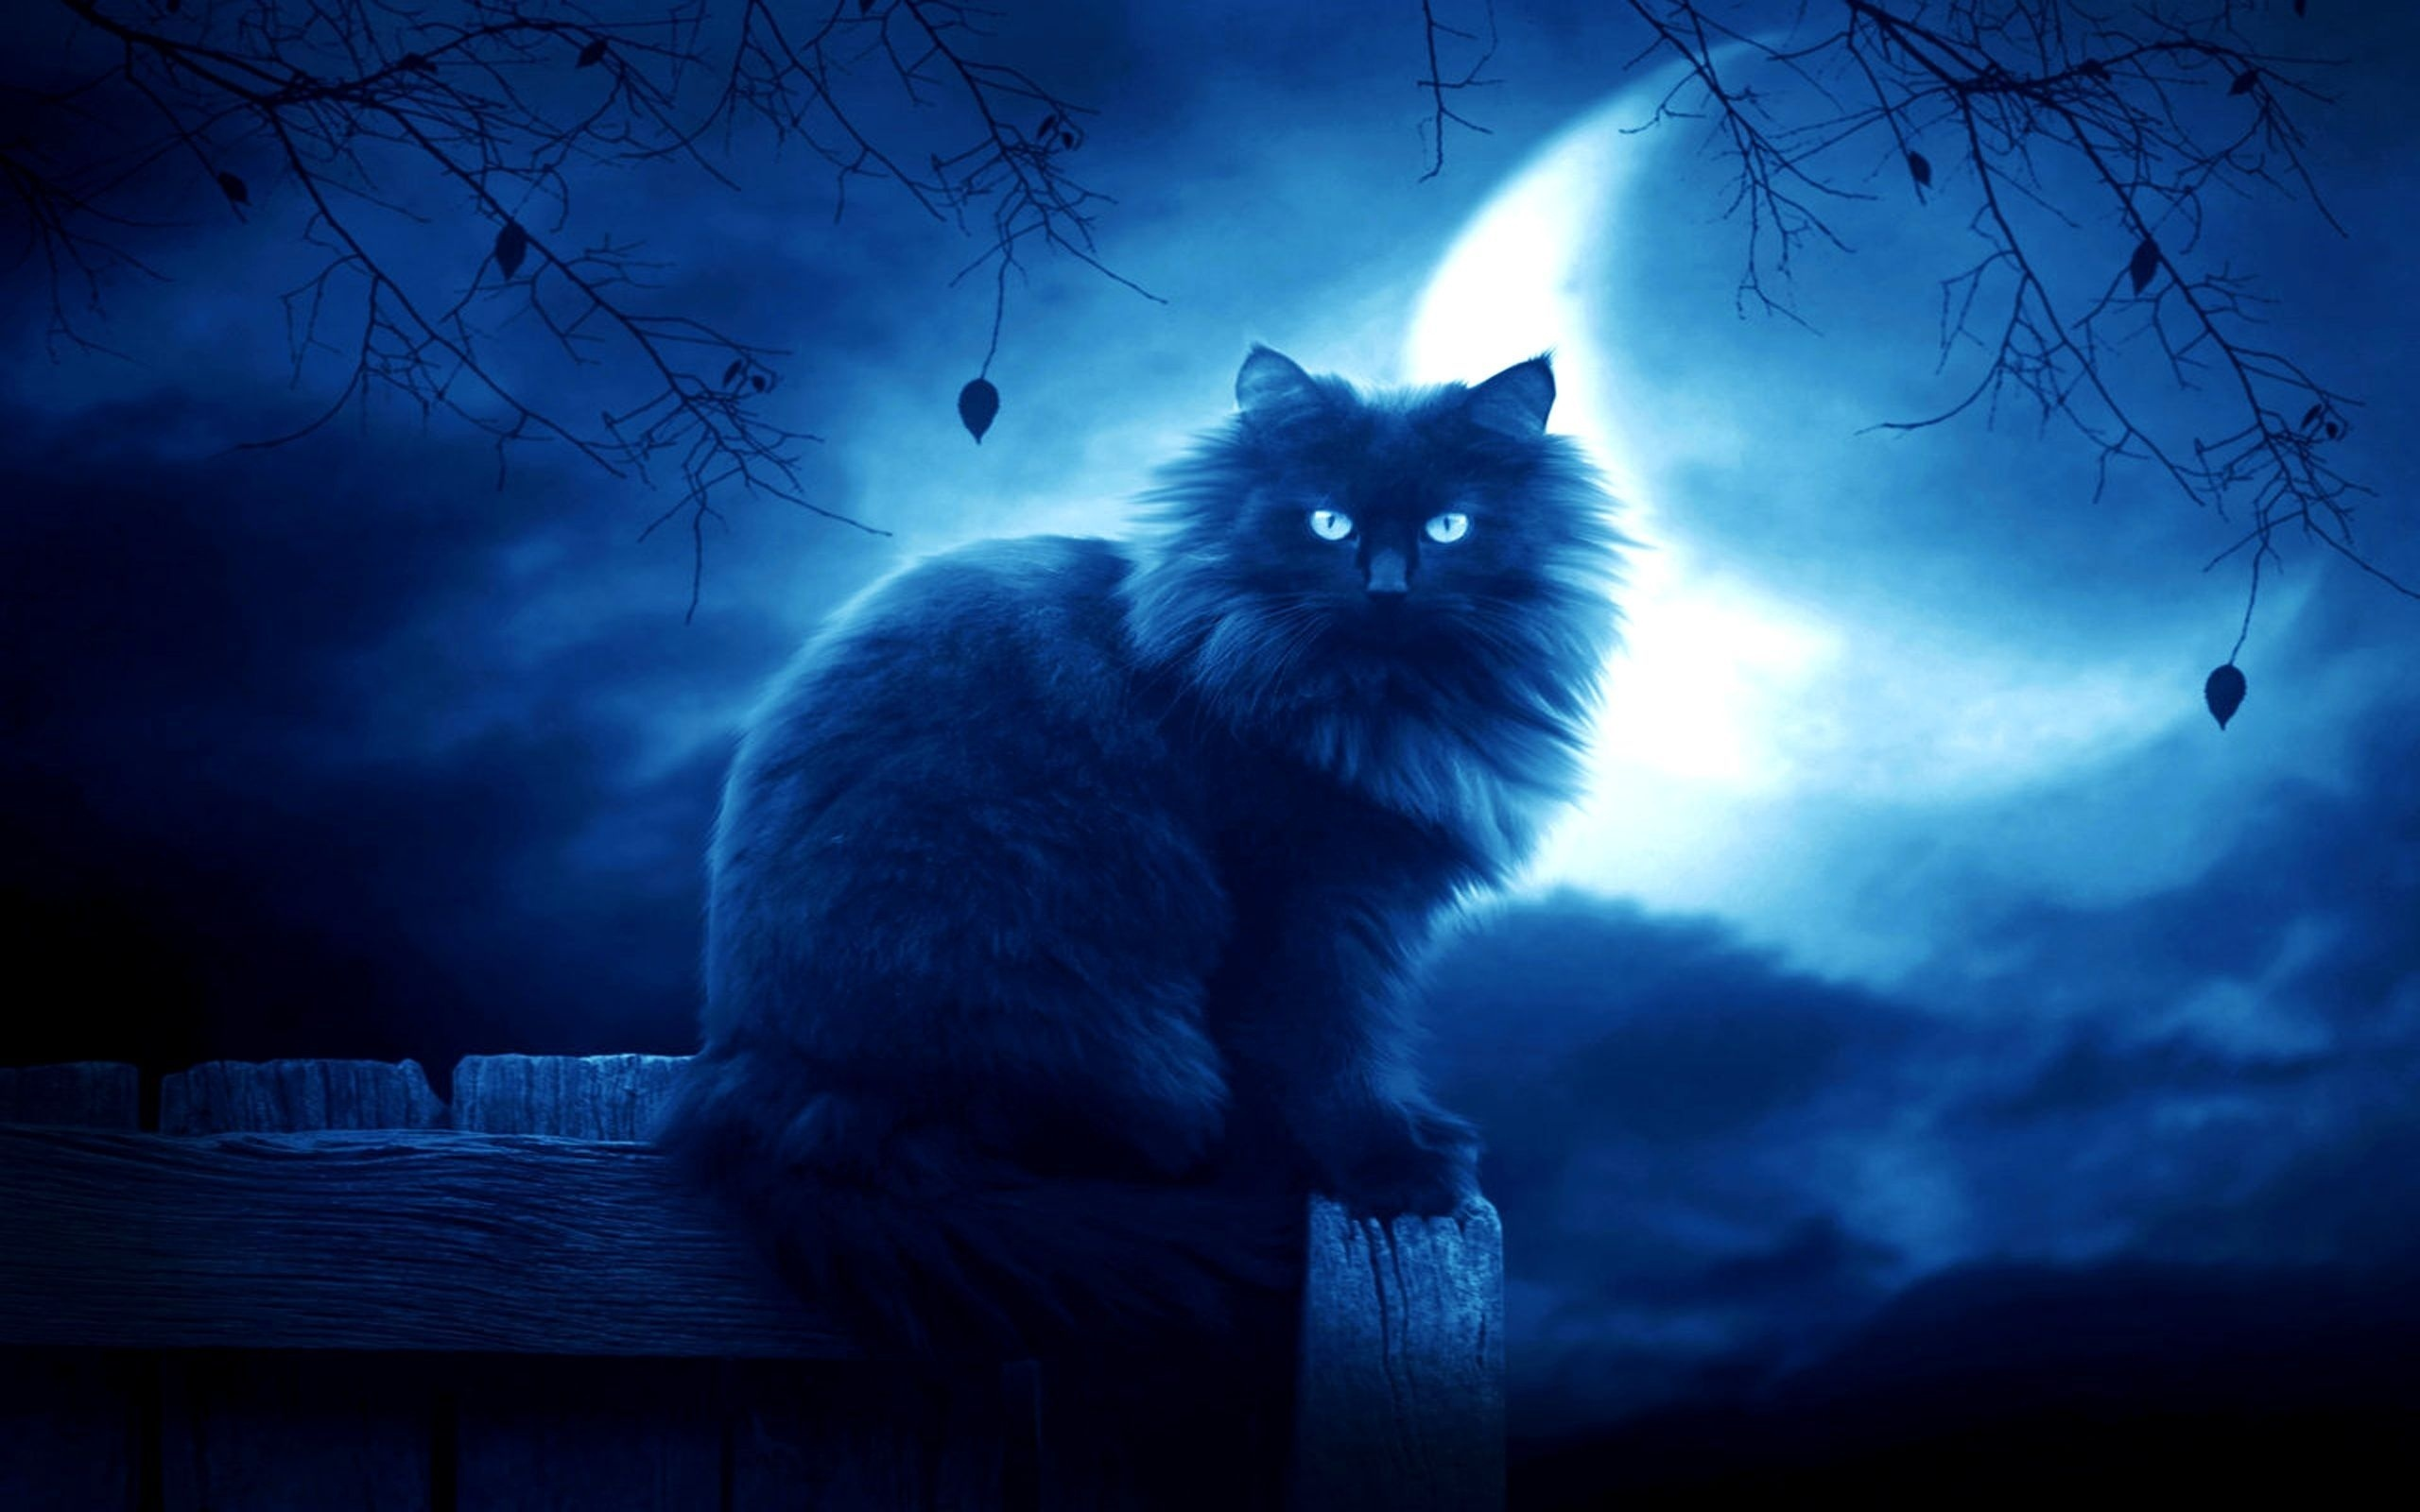 Must see Wallpaper Night Cat - wallls  Trends.jpg